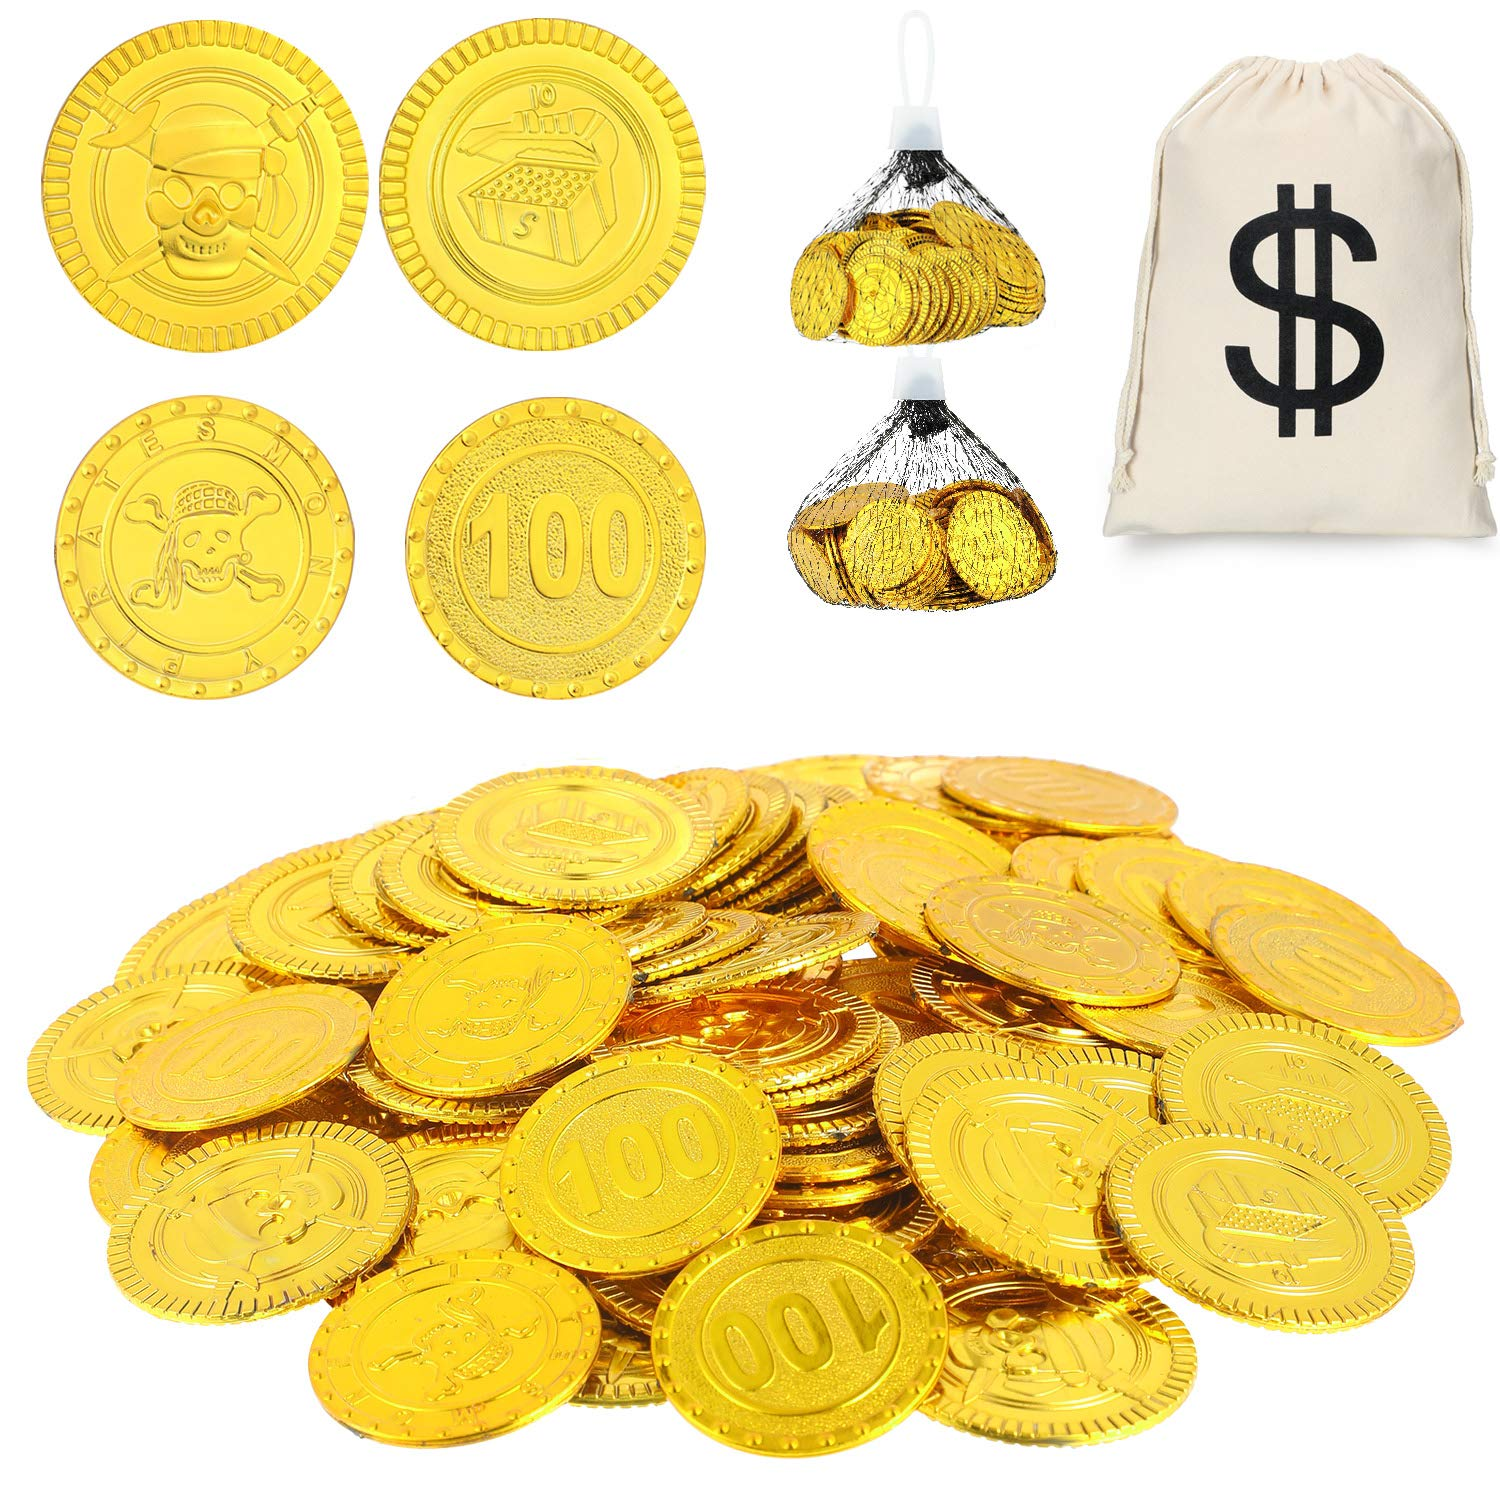 200 Pieces Gold Plastic Coins Toy Play Coins Treasure Pirate Coins Robber Costume Coins with Dollar Symbol Drawstring Bag for Pirate Party Halloween Costume by Boao